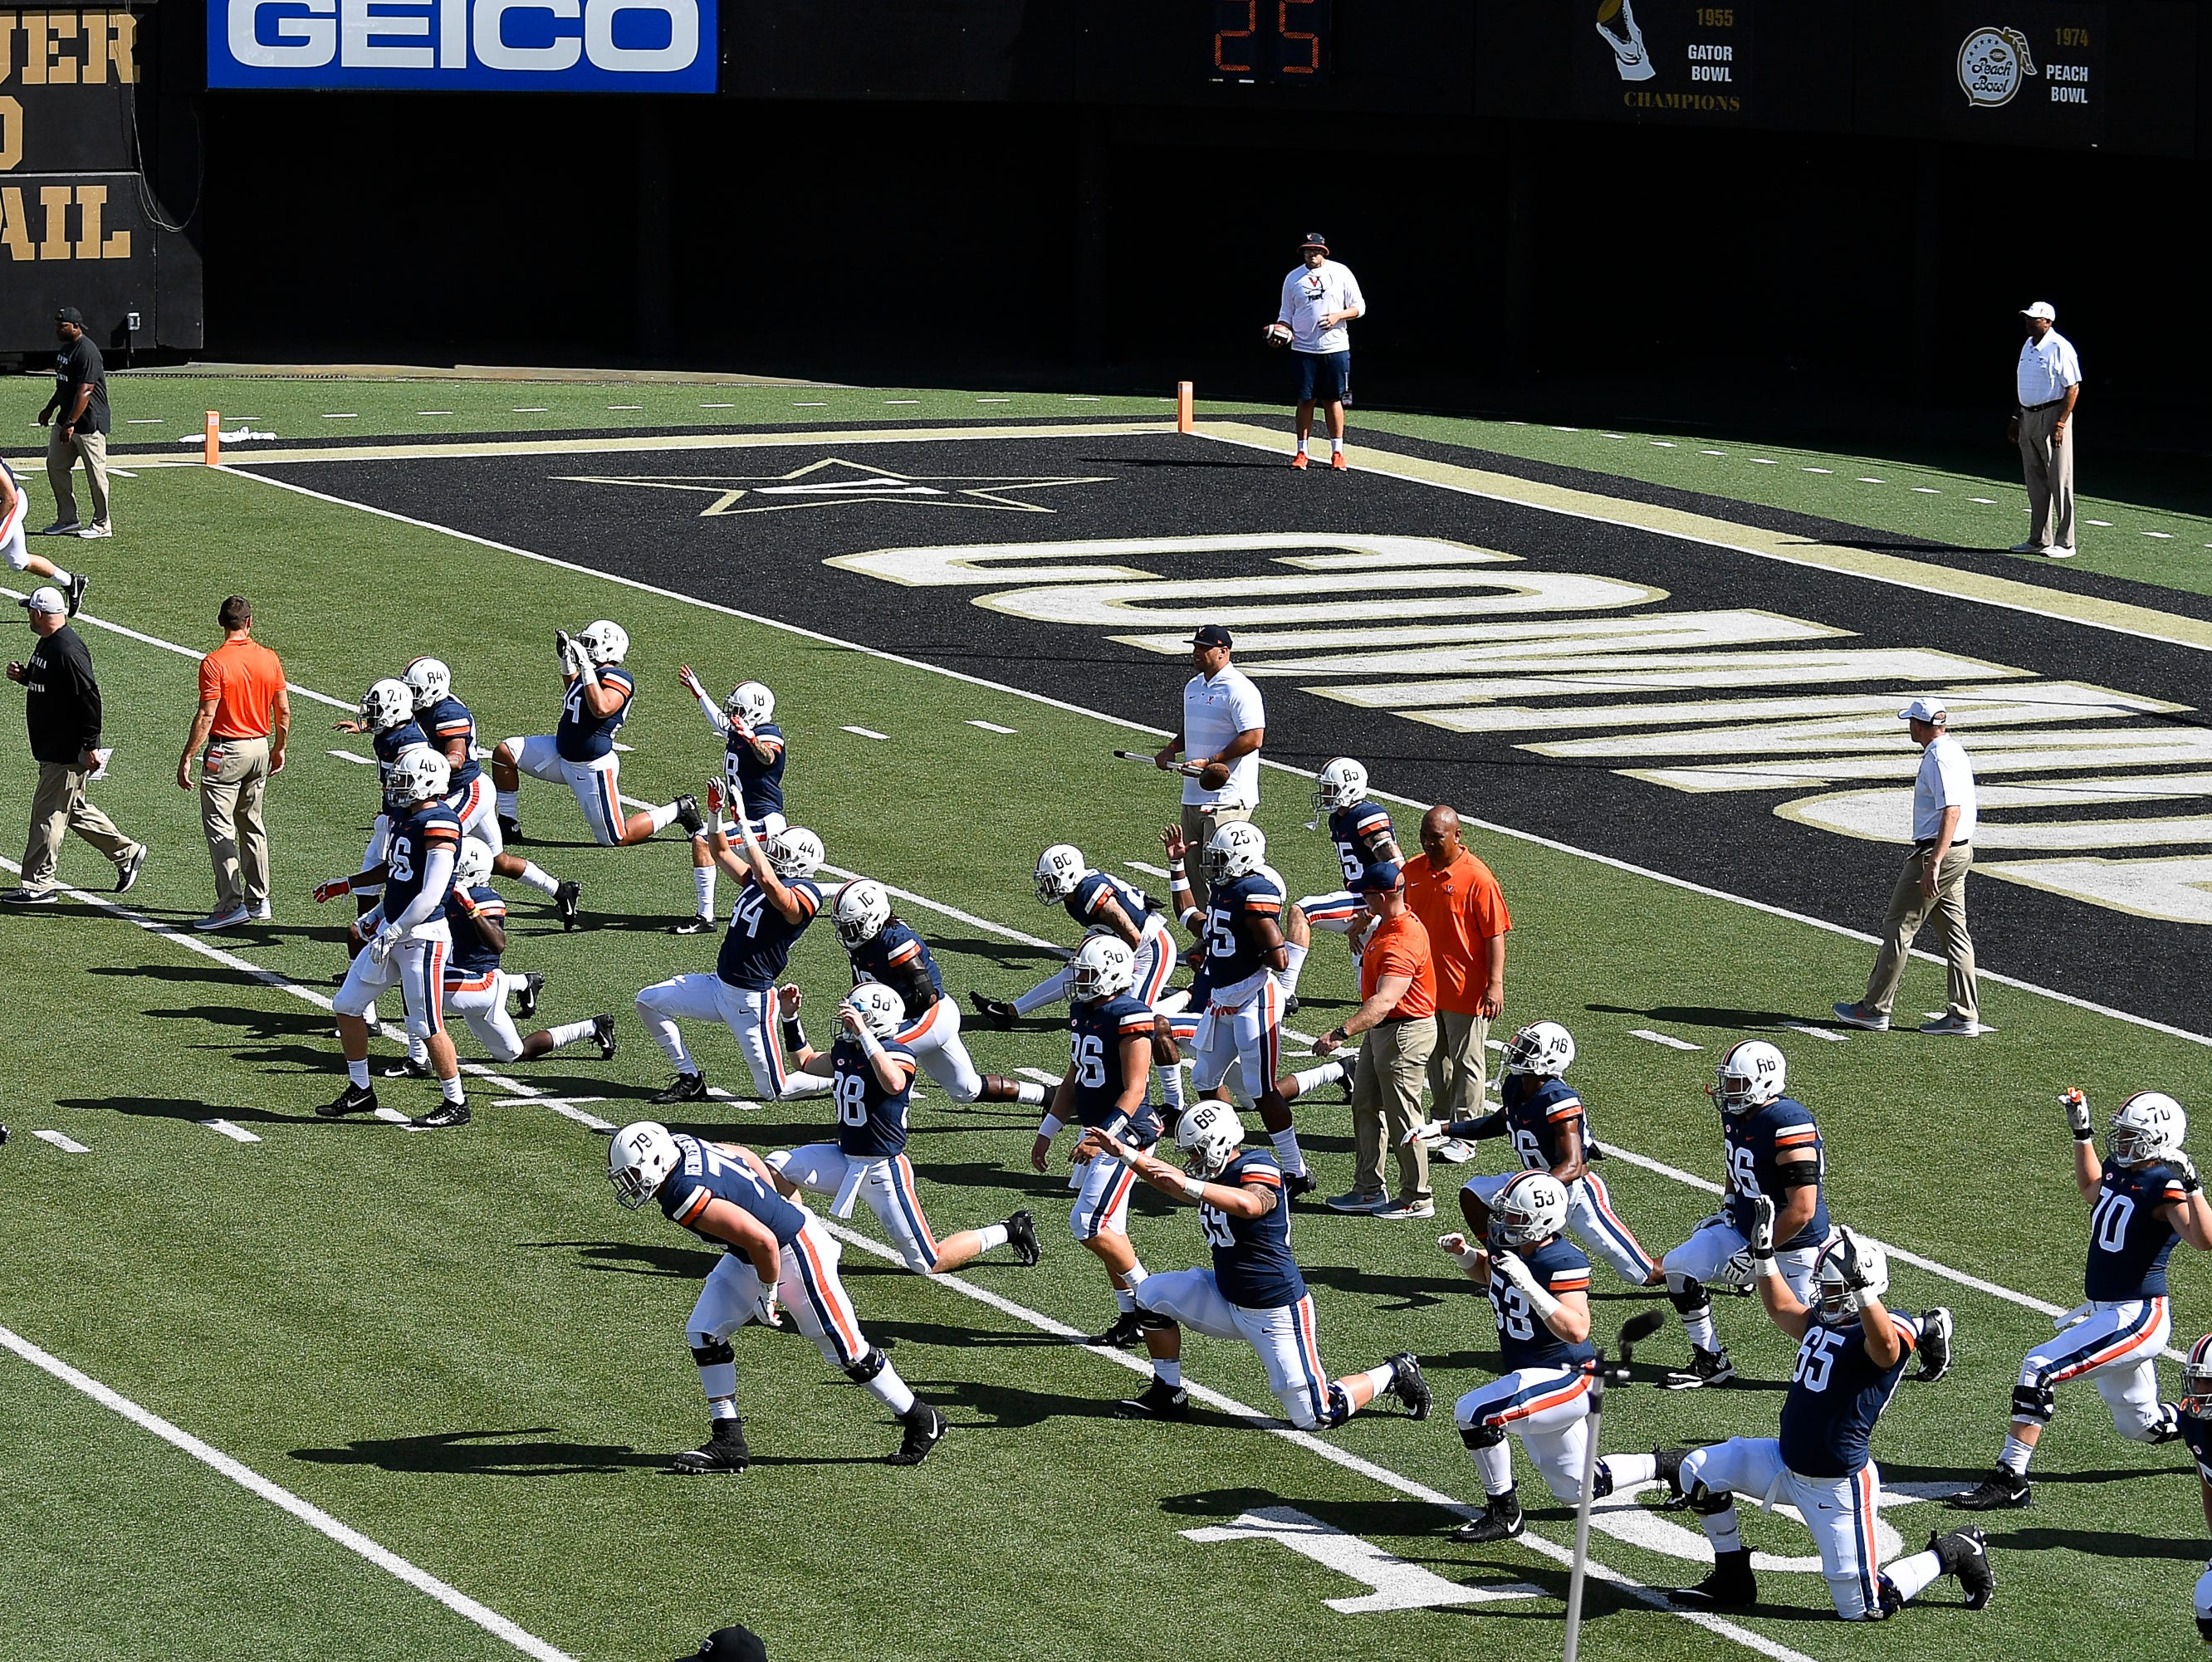 Virginia warms up before their game against Ohio at Vanderbilt Stadium Saturday, Sept. 15, 2018, in Nashville, Tenn.